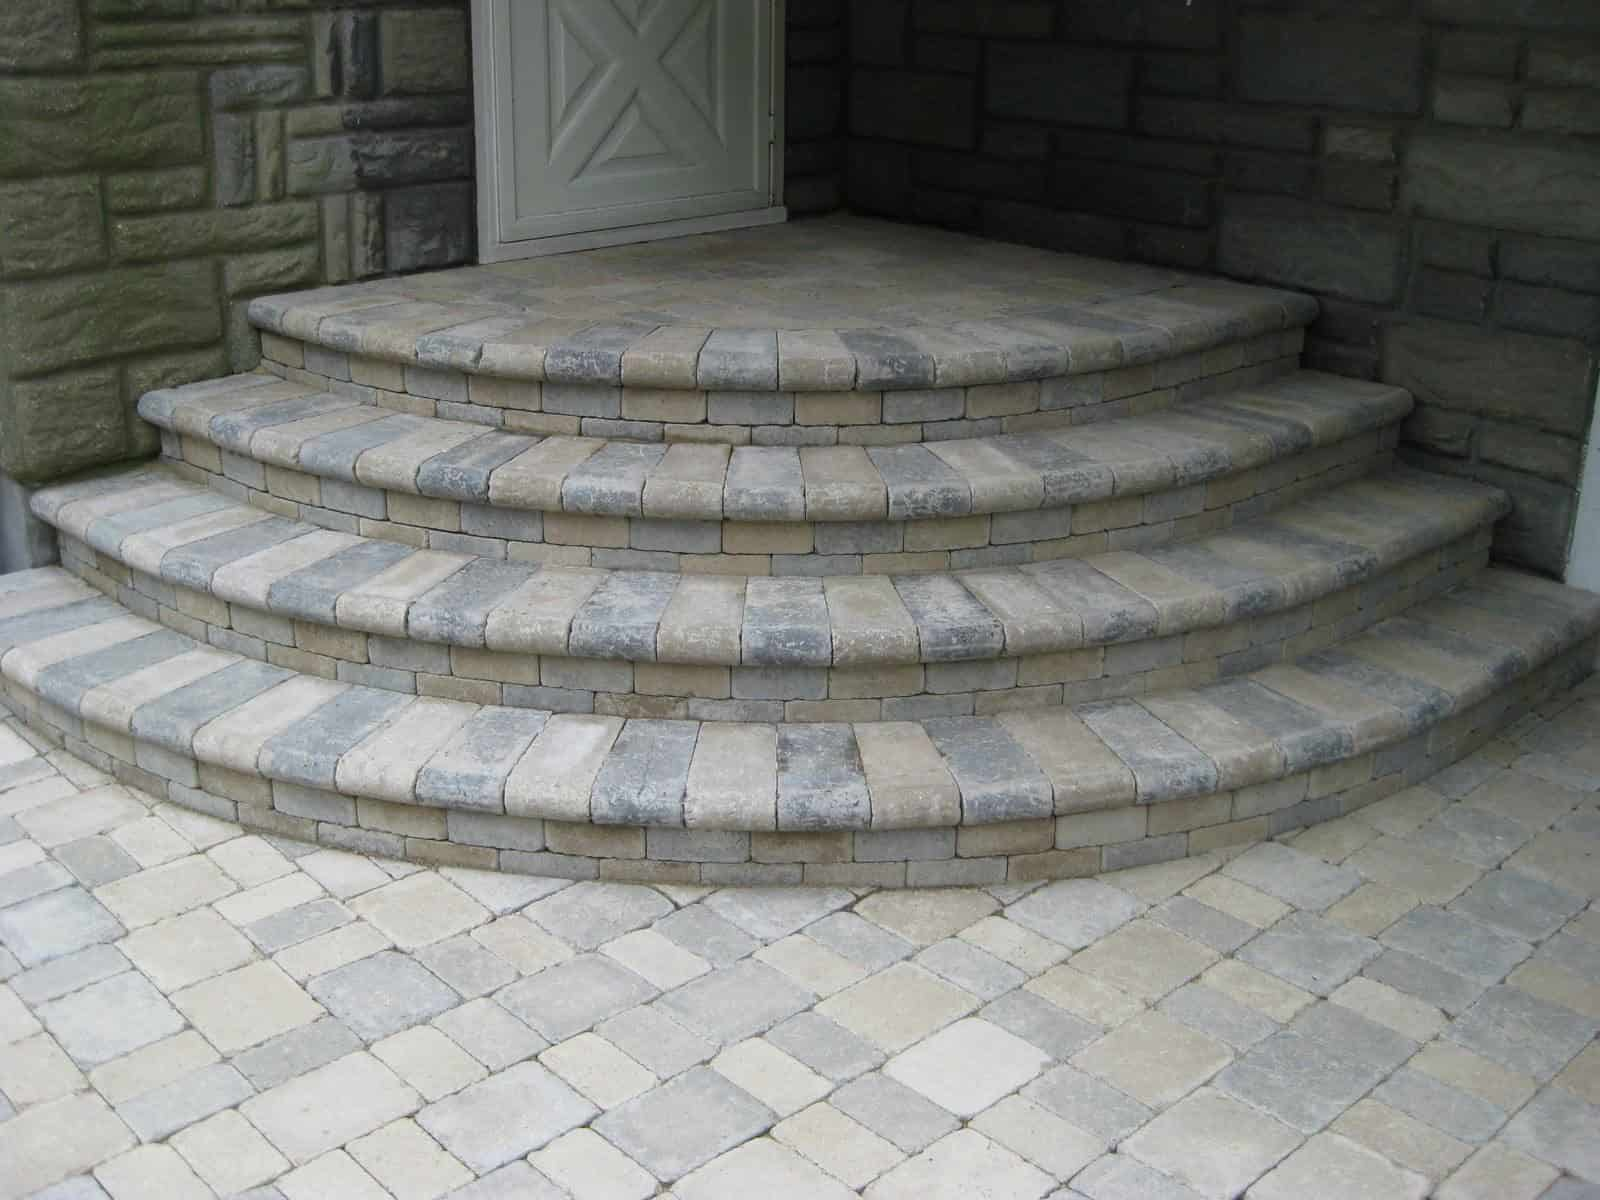 Paver Stoop - Unilock Tumbled Brussels Block Paver Stoop- Sandstone and Limestone Mix - Random Pattern - Huntington, Long Island NY